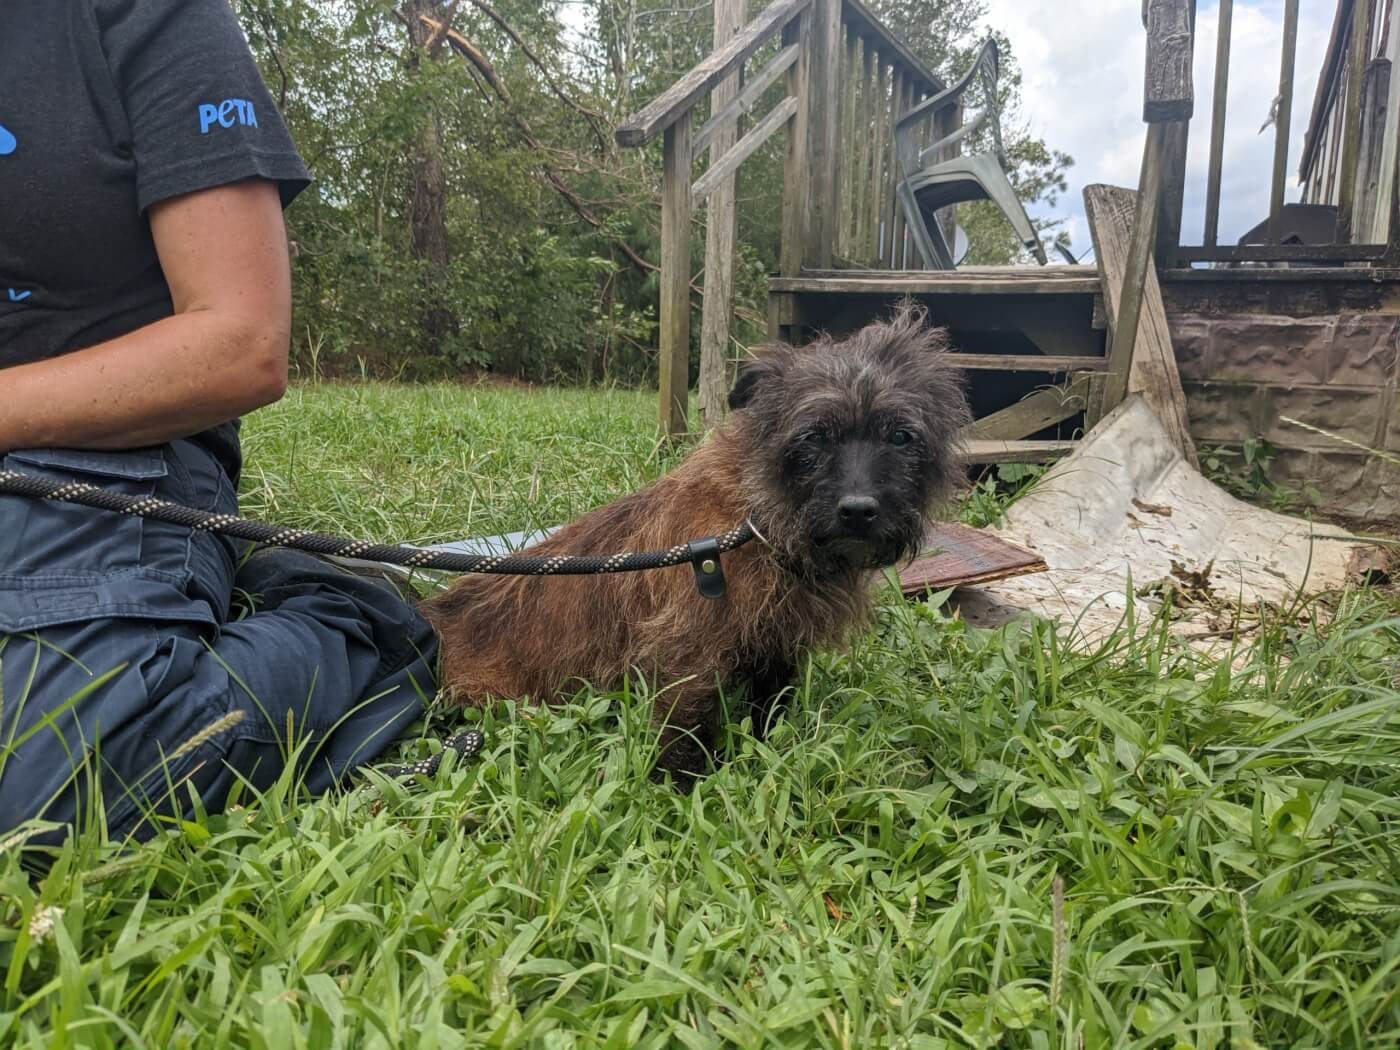 This little dog was recovered from the debris of a tornado by a team of PETA fieldworkers